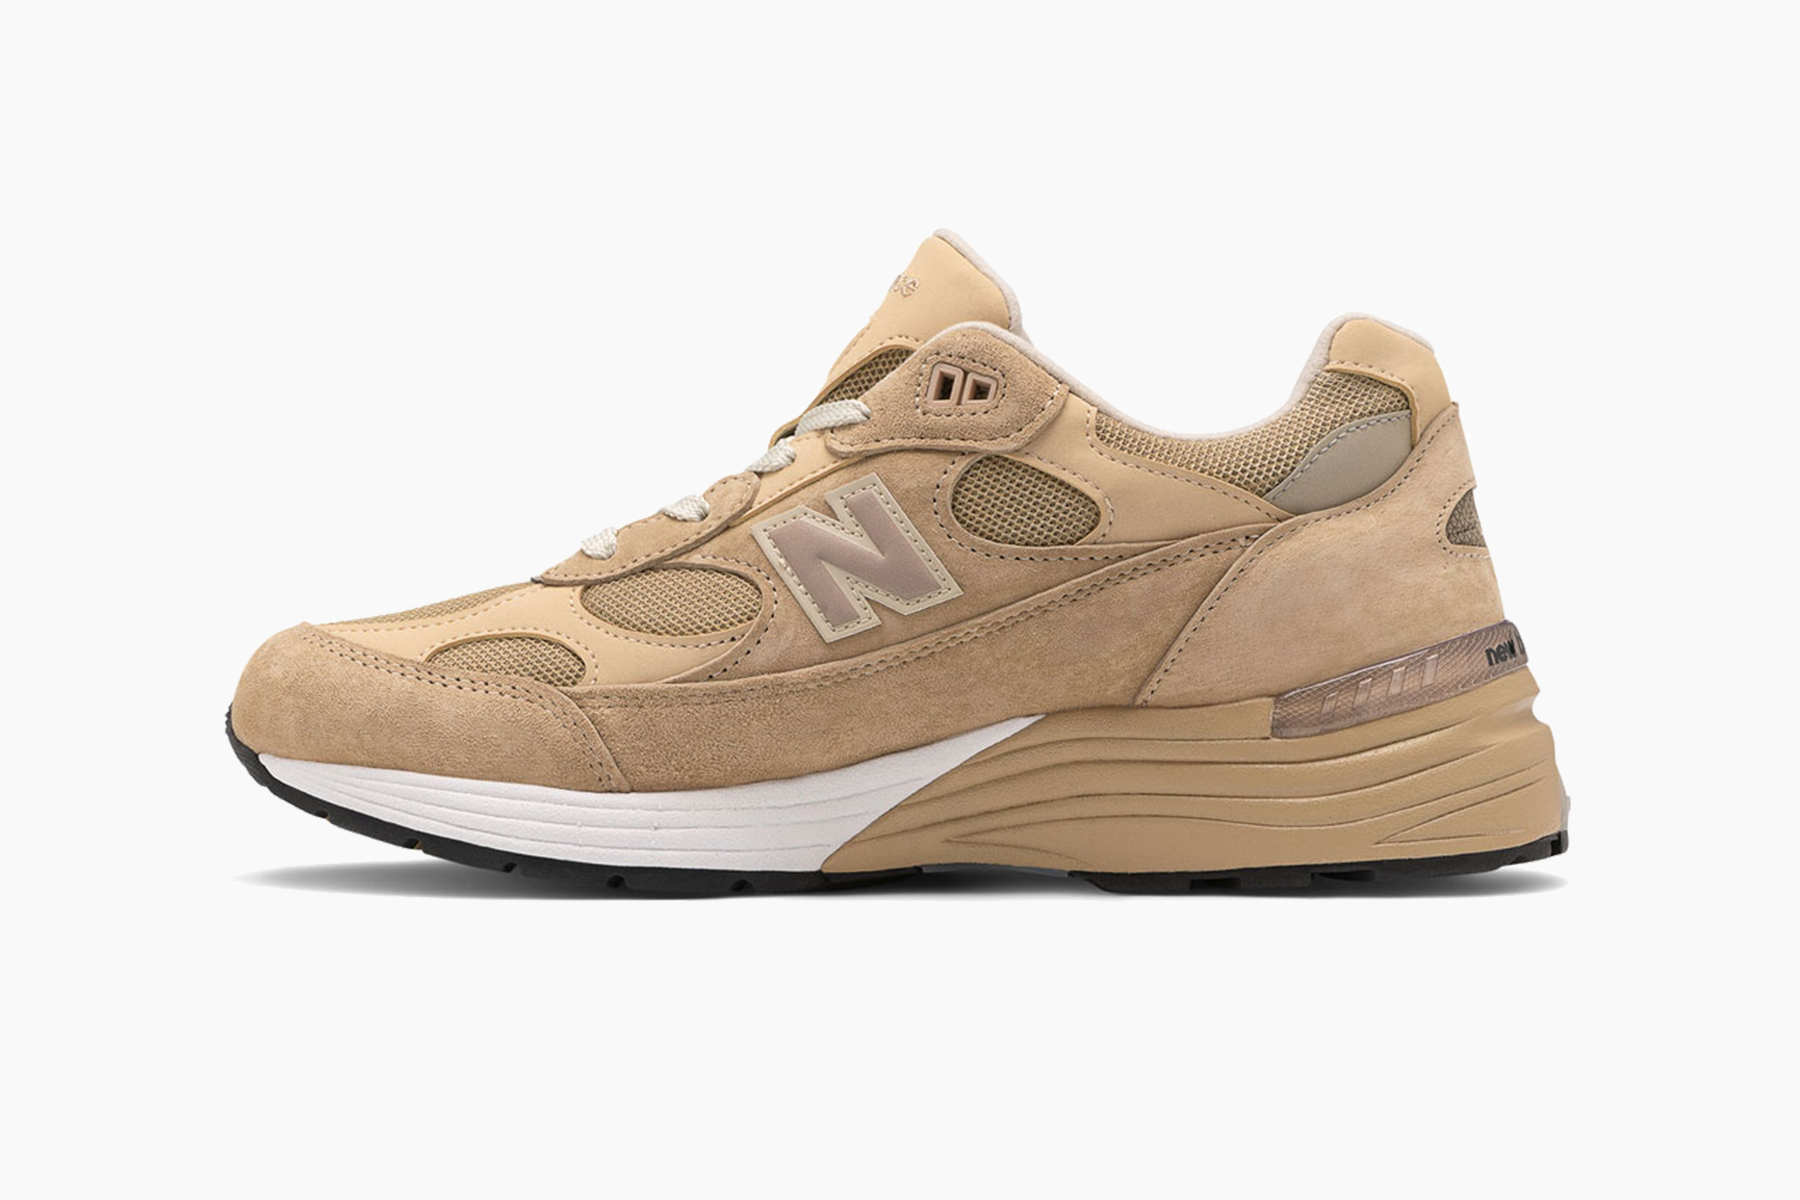 New Balance Made in US 992 Tan With White